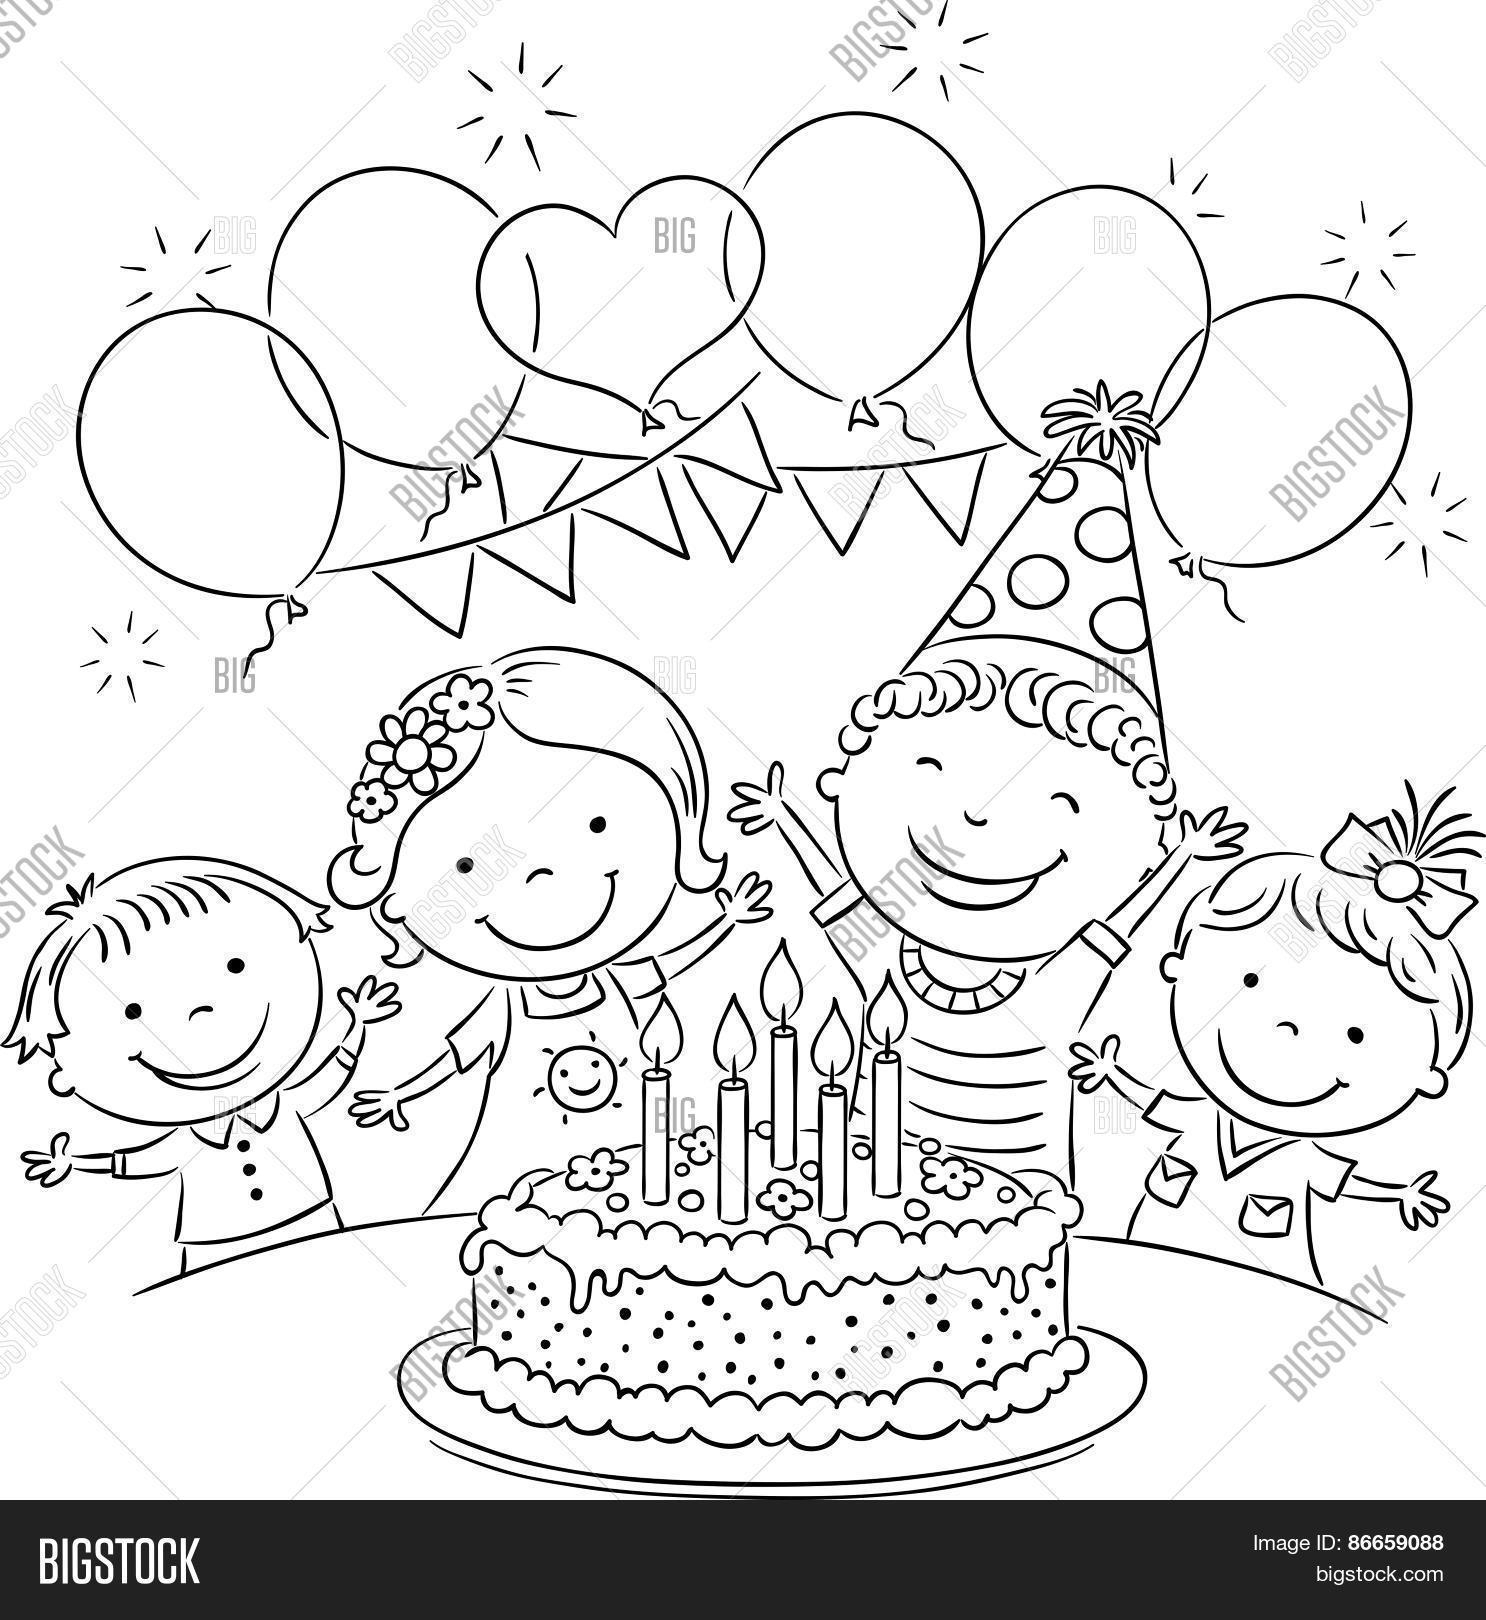 simple birthday party drawings ; drawing-birthday-party-ideas-birthday-party-scene-for-drawing-kids-birthday-party-outline-stock-vector-stock-photos-bigstock-1